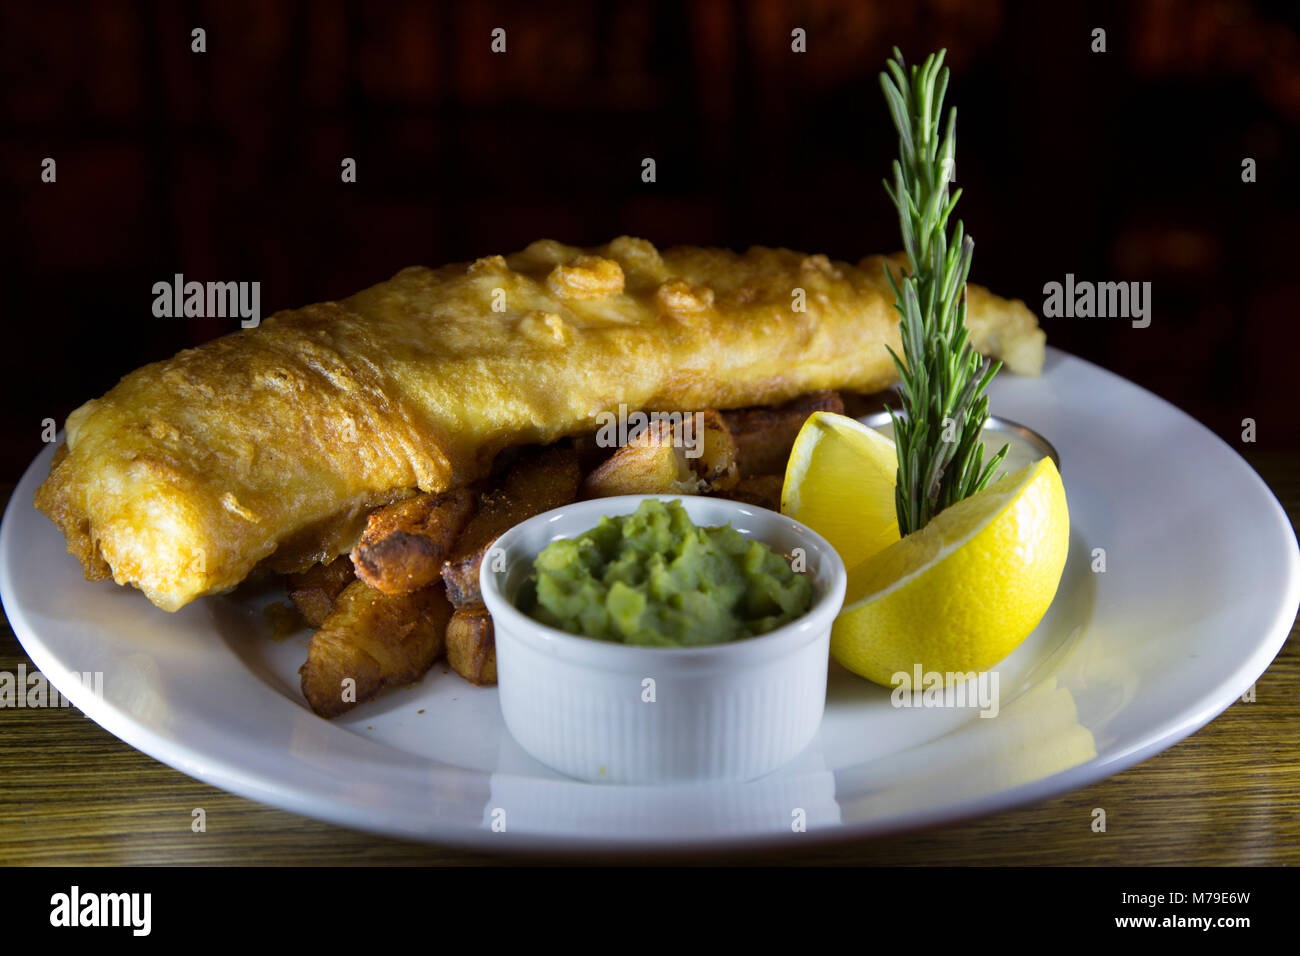 Fish and chips served on a plate in Sunderland, England. The dish is served with a bowl of mushy peas and a piece - Stock Image